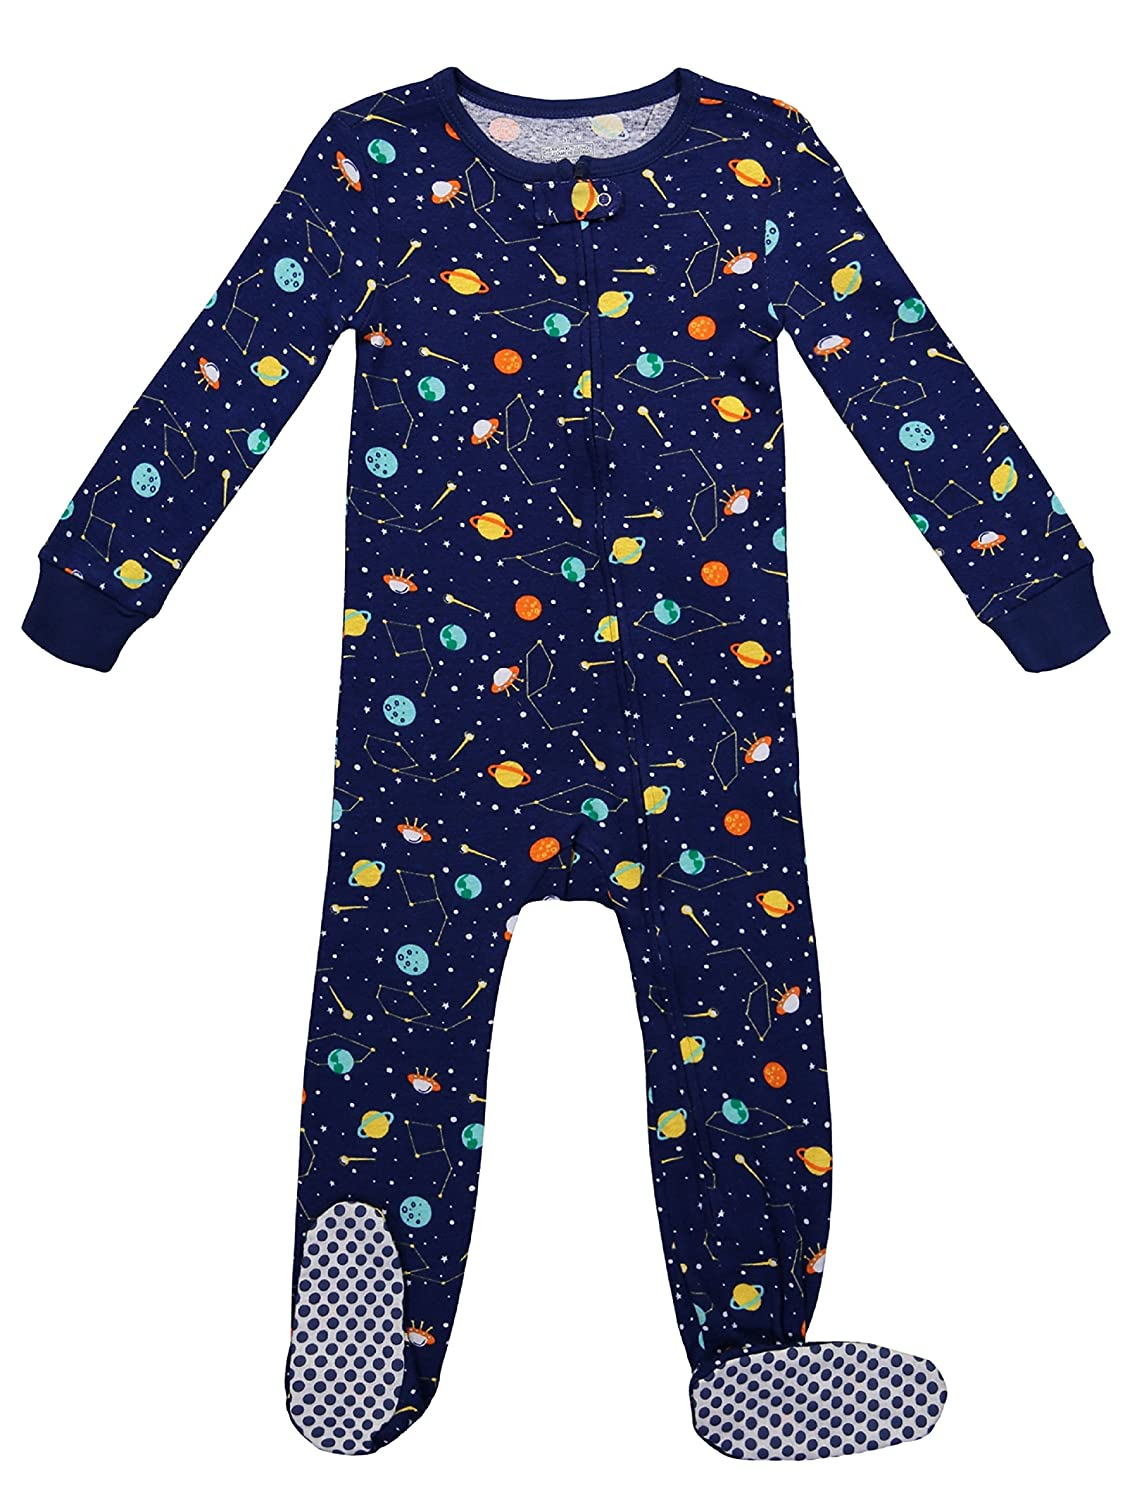 Baby Boys Onesie Sleepwear Long Sleeve Top & Non-Skid Toddler Footed Pajama Set K636373